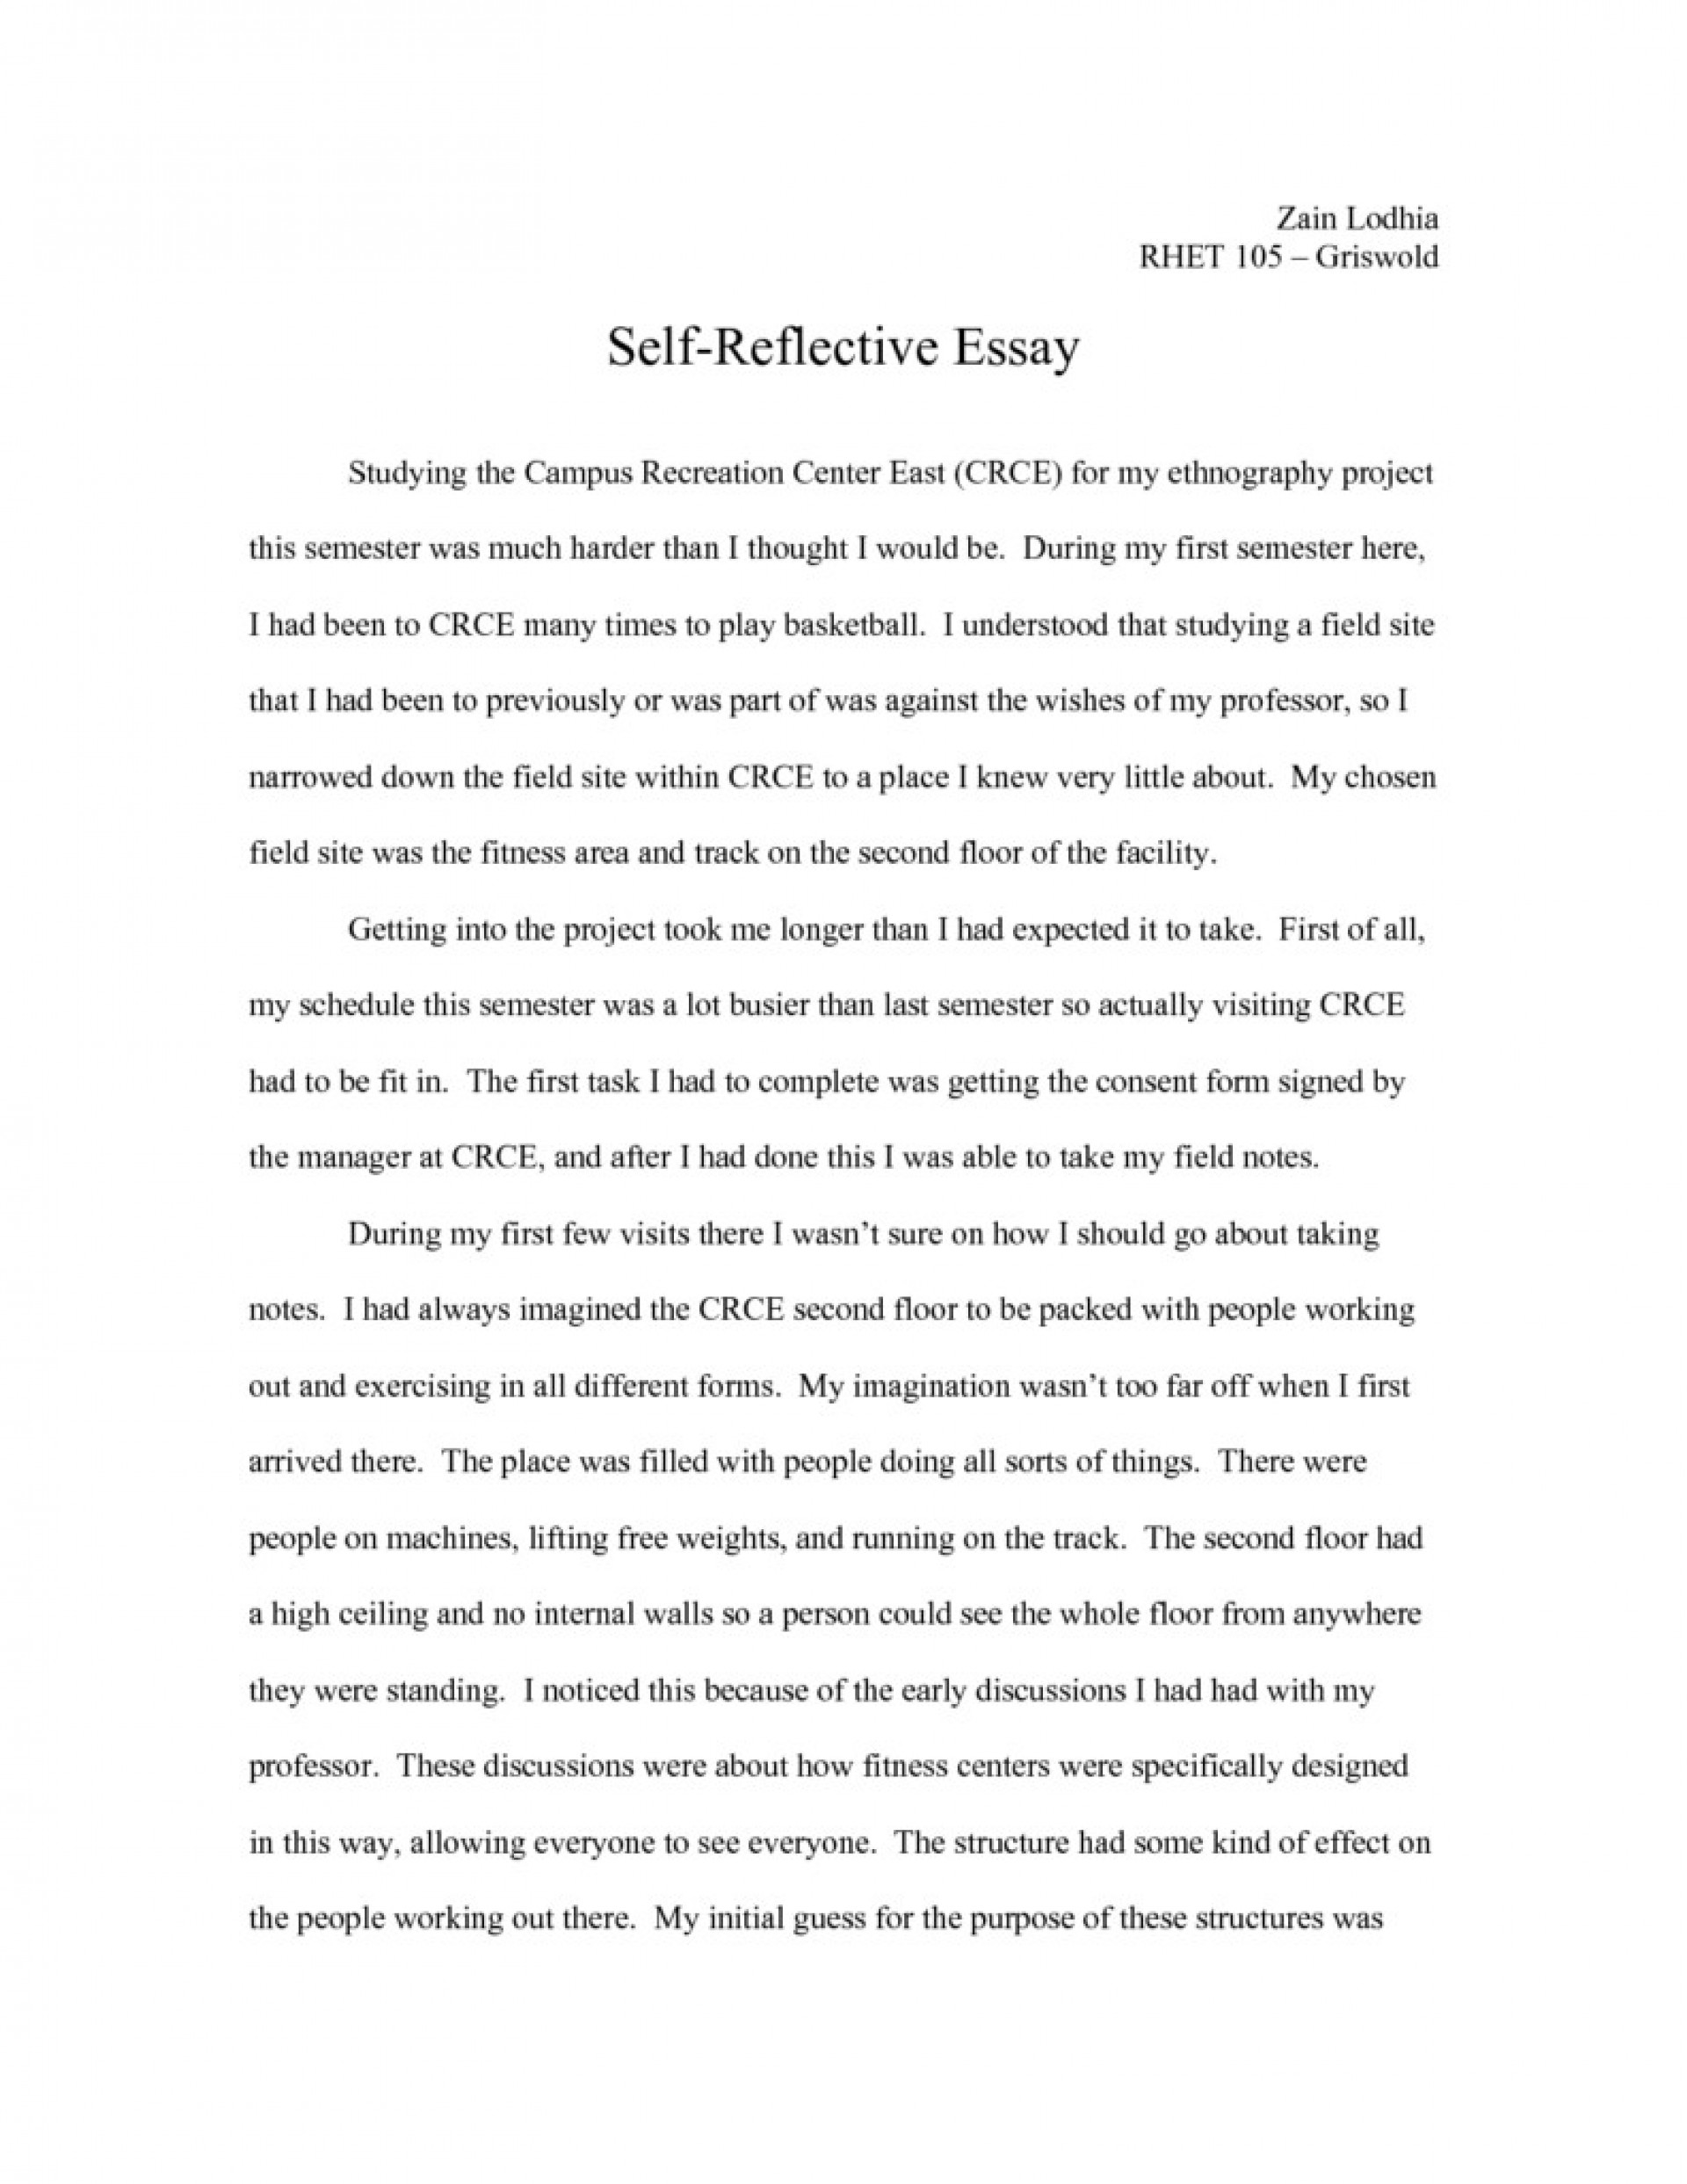 002 How To Write Reflective Essay Writing Essays Examples Smart Portray Of Self Reflection About Me Example Marvelous A Introduction On Book Do You 1920